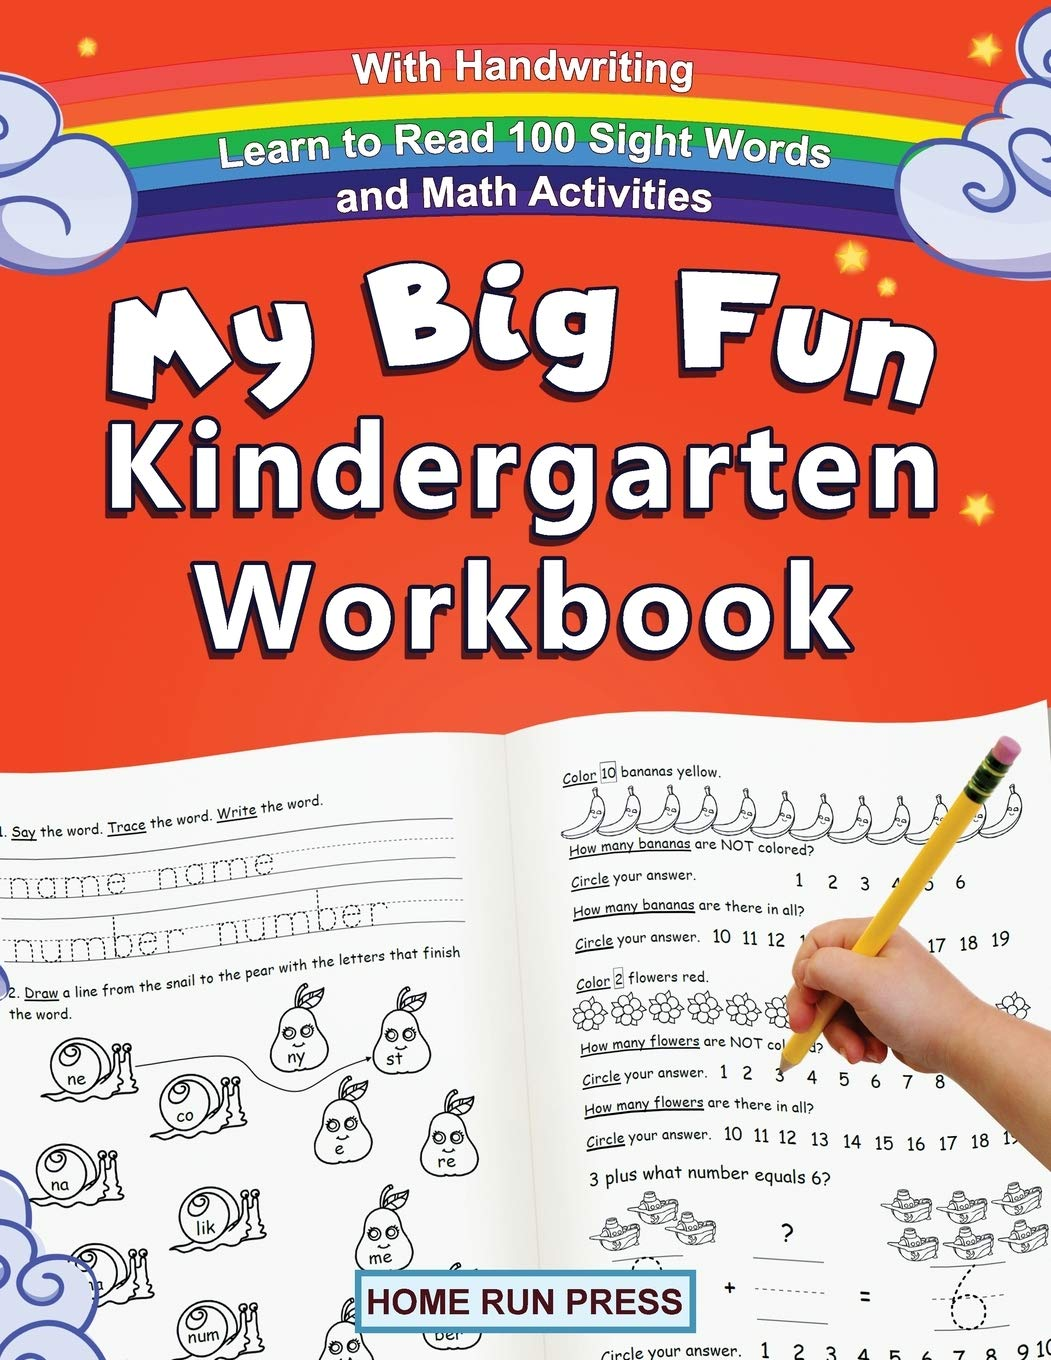 Writing Workbook English Home Learning And School For Toddler Gift Game Ages 3-5